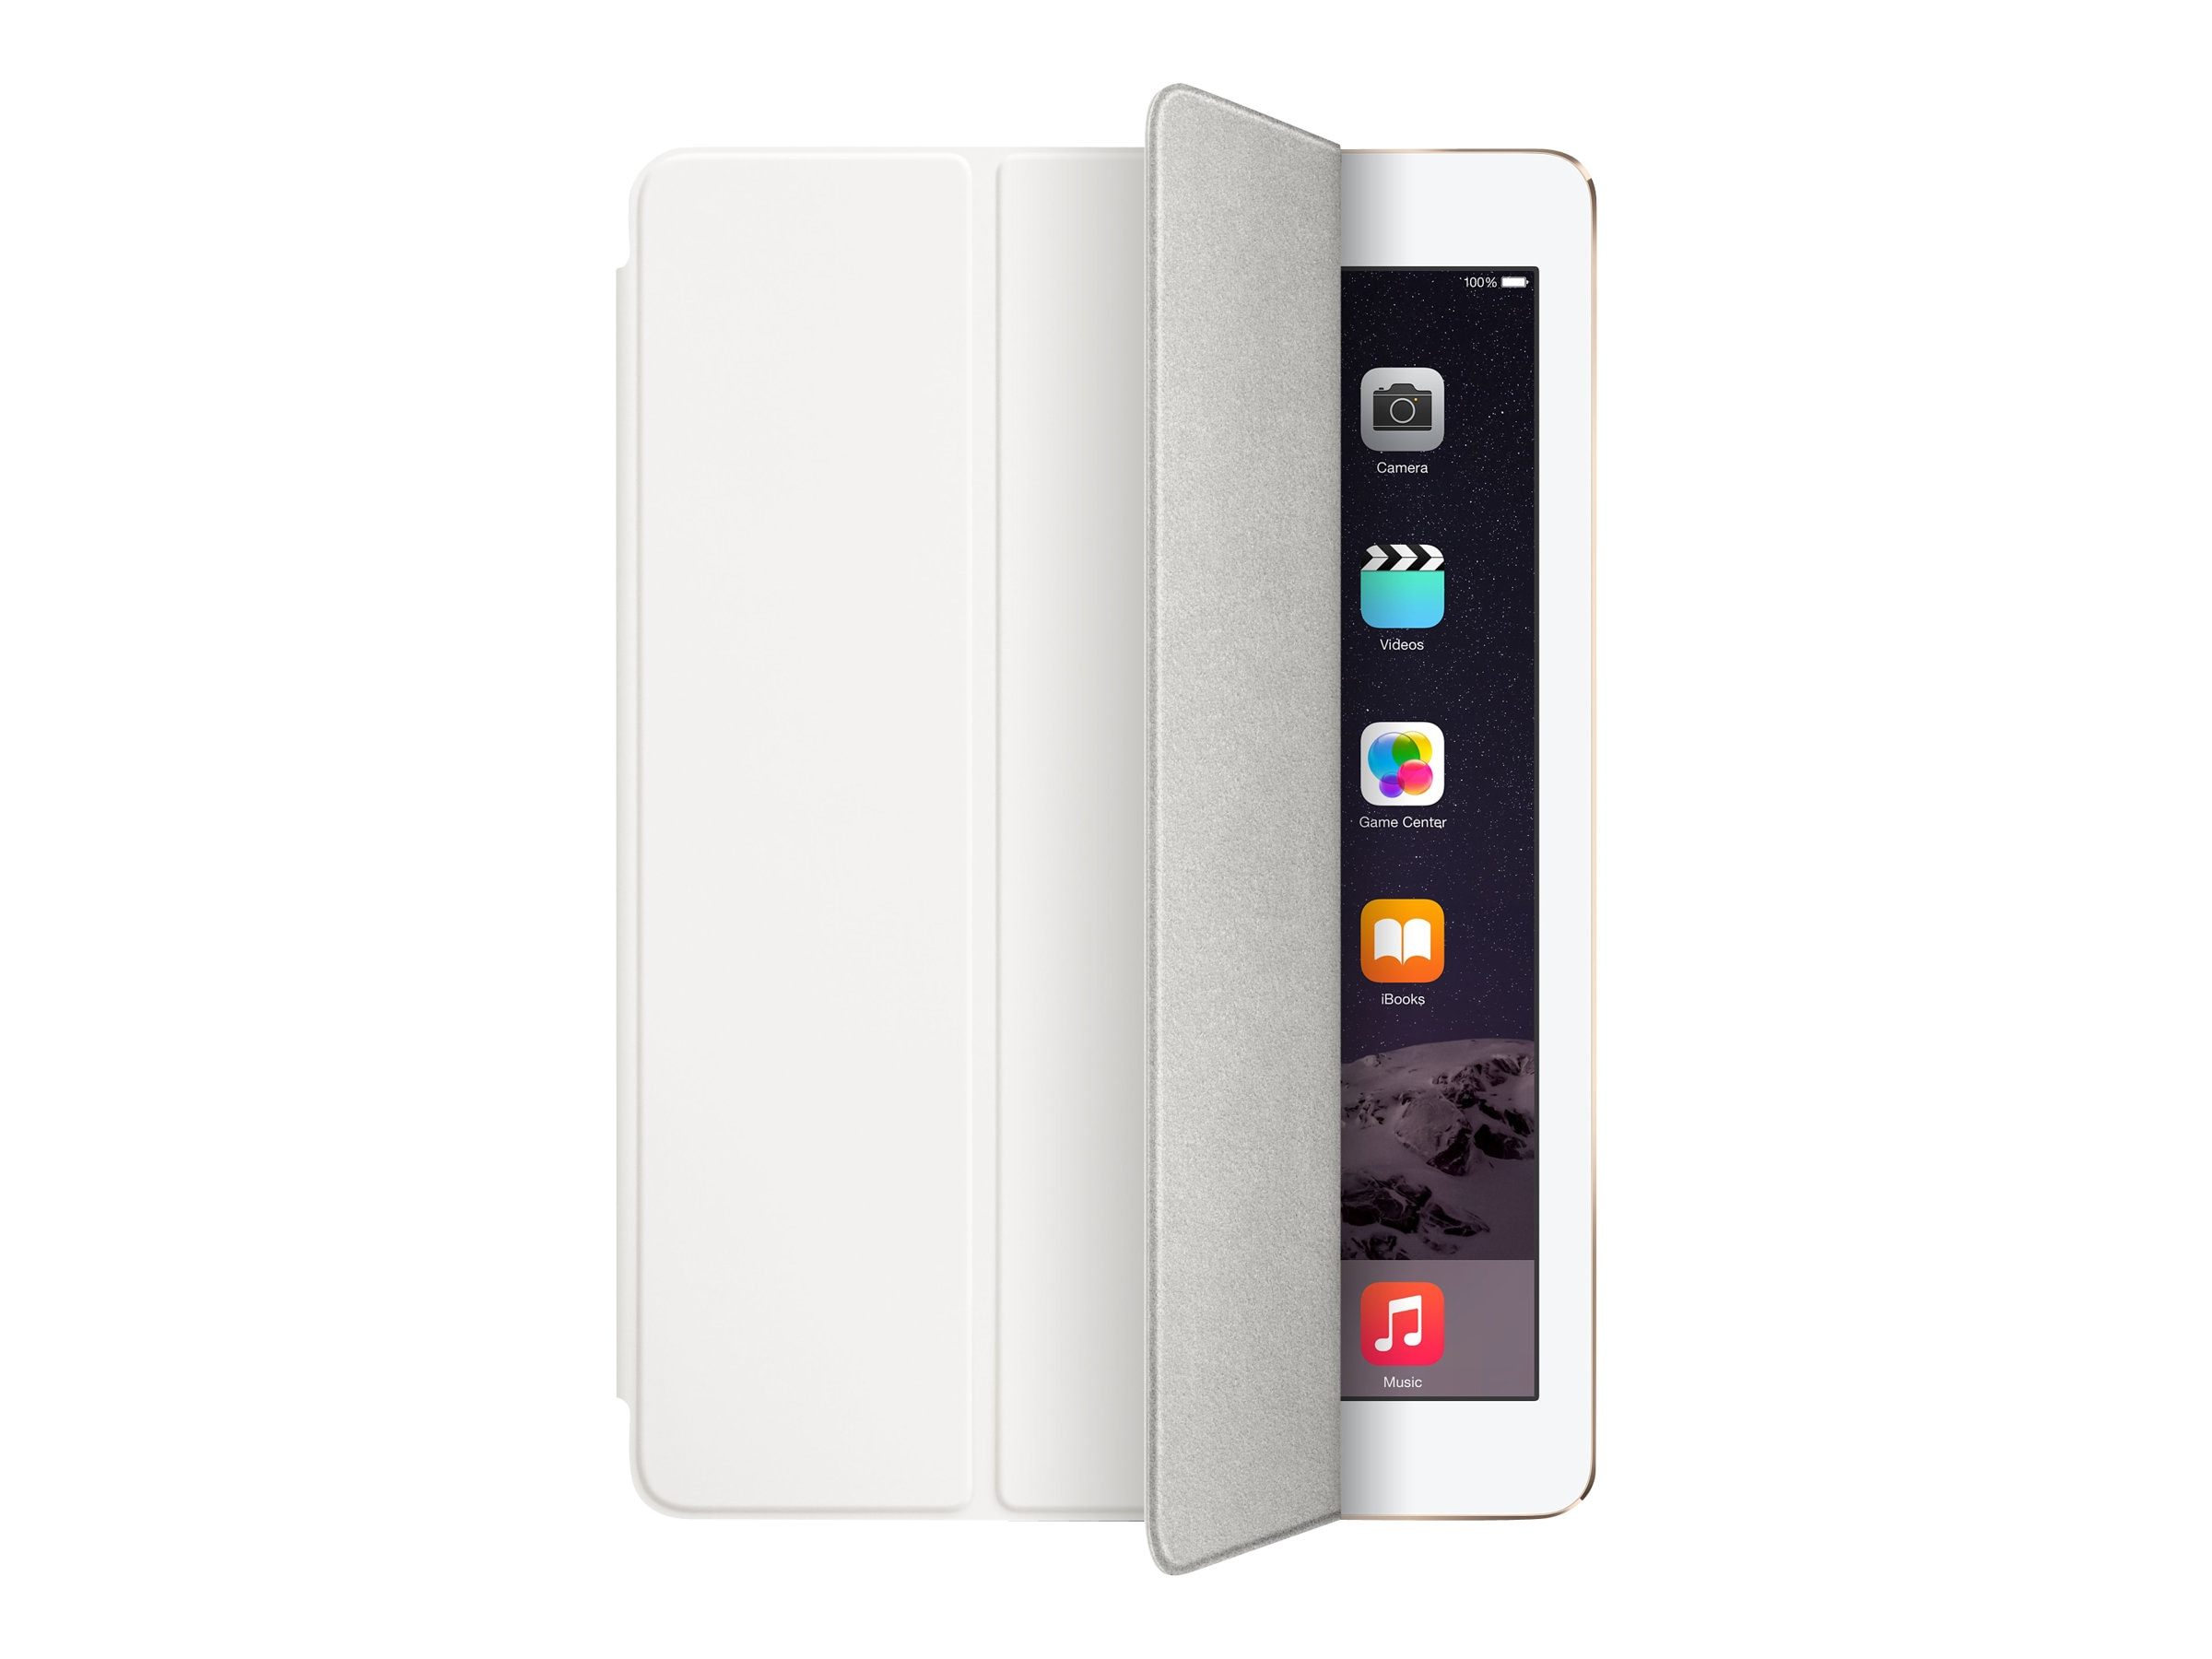 Apple iPad Air Smart Cover, White, MGTN2ZM/A, 17959453, Carrying Cases - Tablets & eReaders